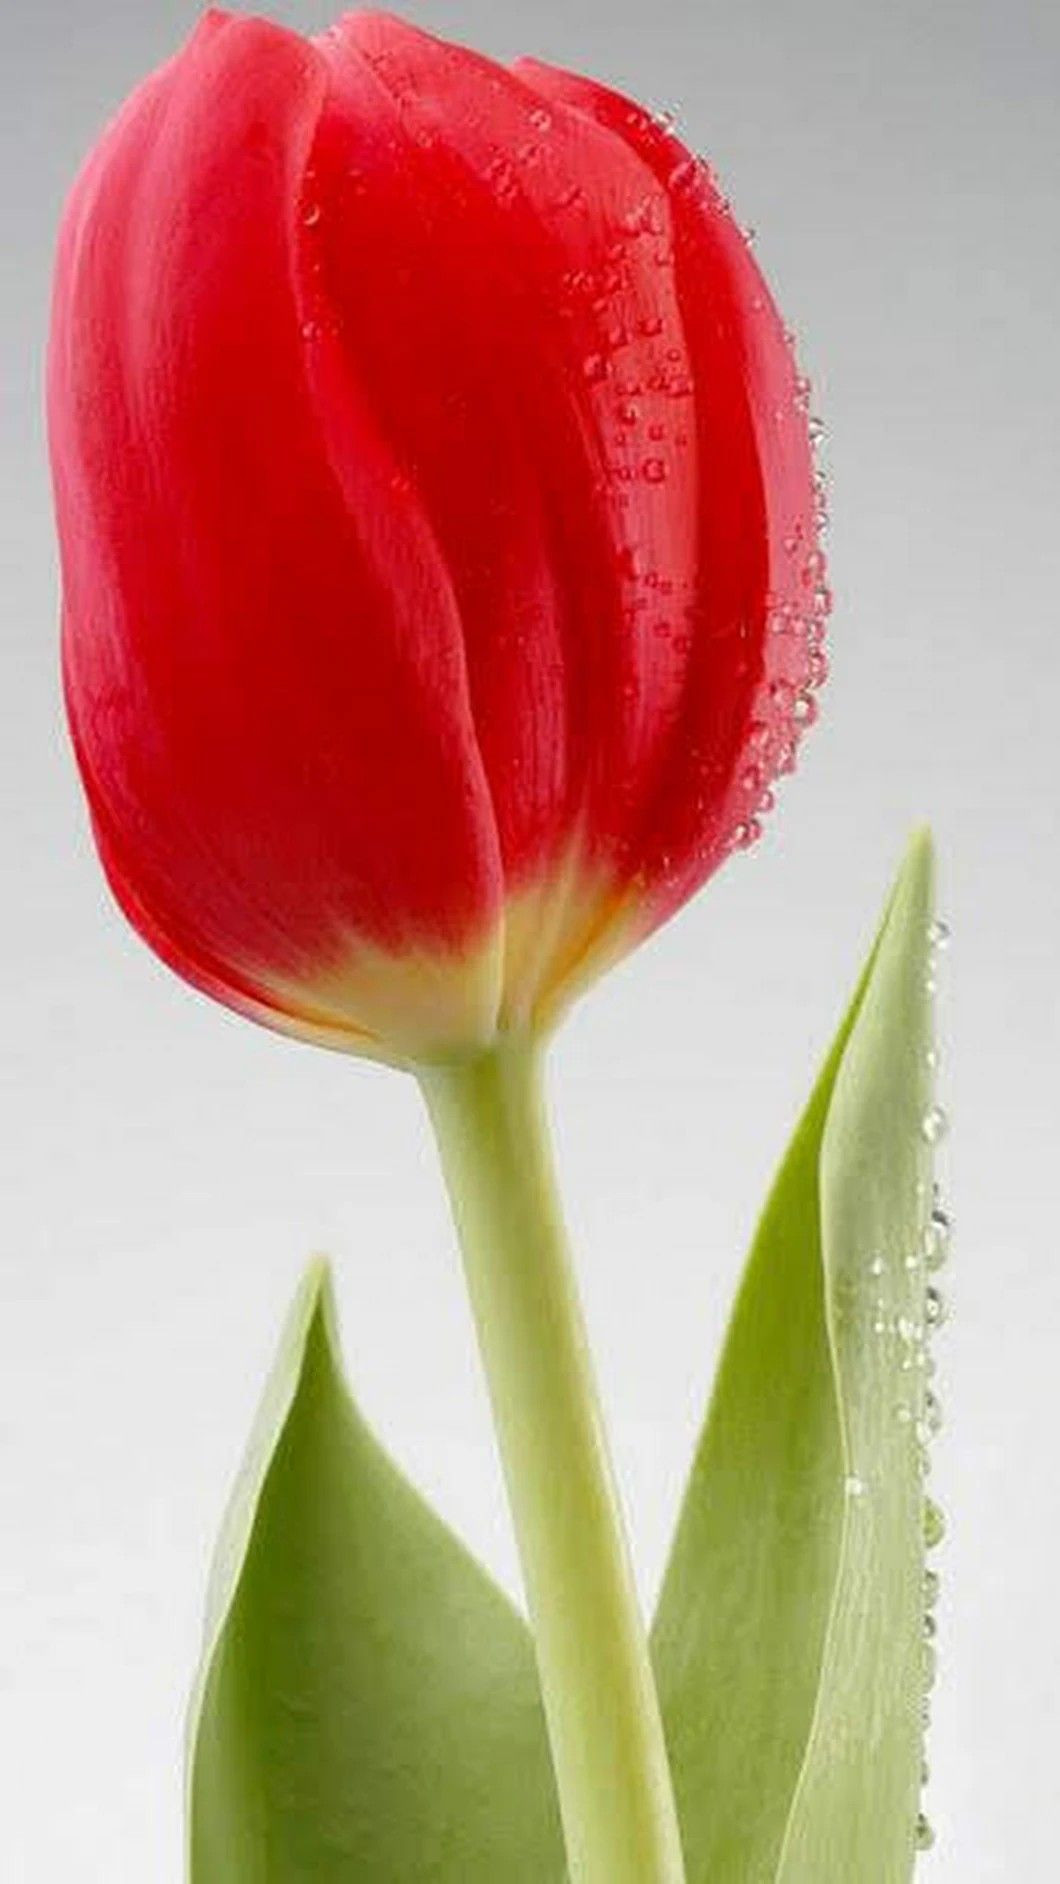 Tulip Vase Amsterdam Of Pin by Siddoo Patil On A²a²¨a³‹a²¹a² A²¨a²a²¸a²a³a²— In 2018 Pinterest with Regard to Red Tulips Red Flowers Spring Flowers Pretty Flowers Pink Roses Red